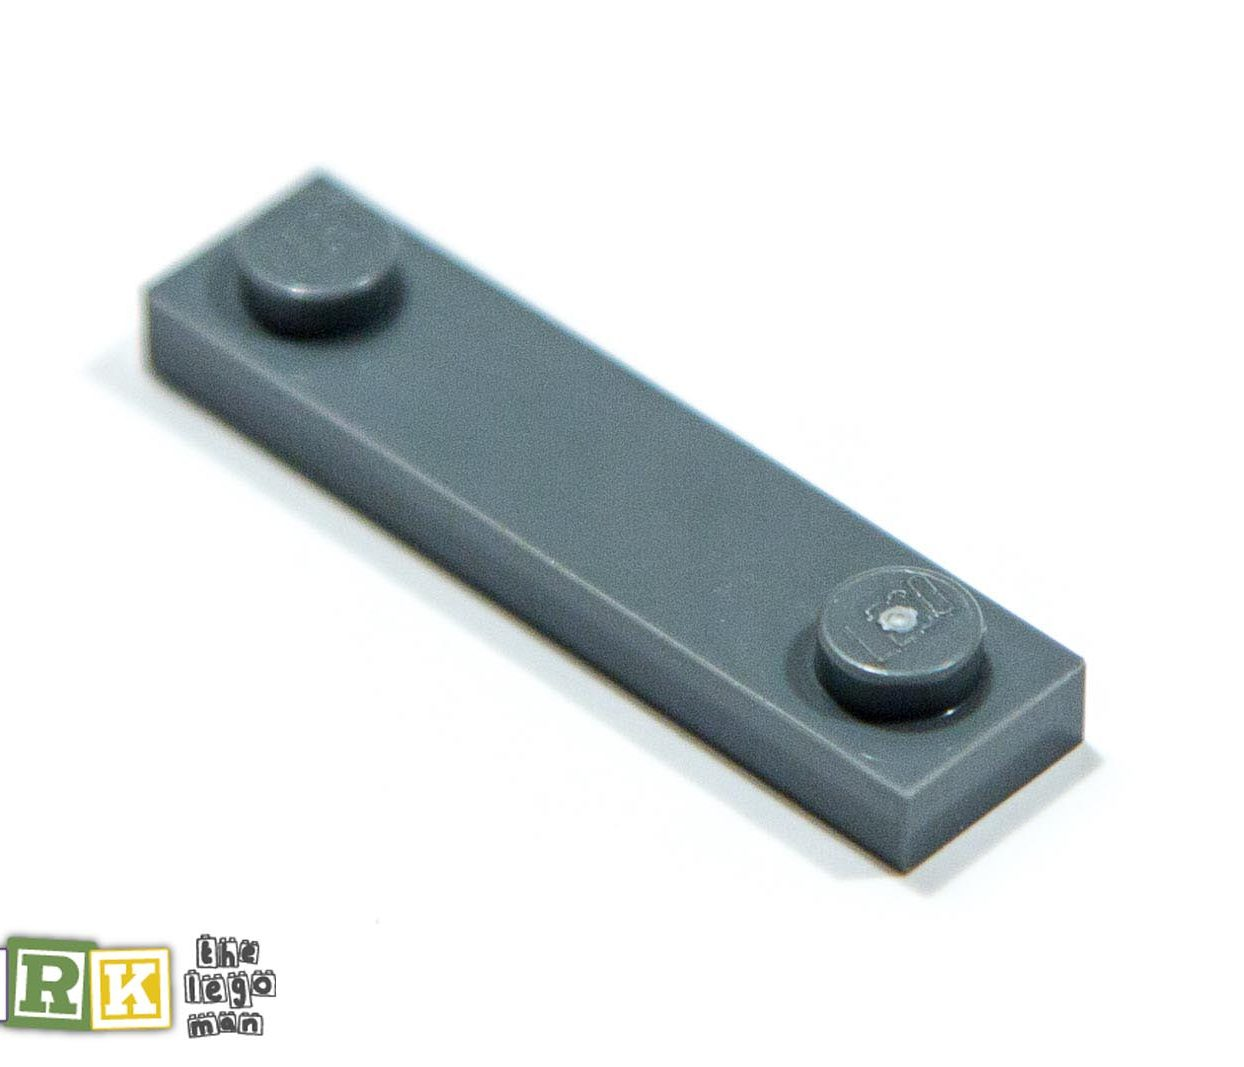 Lego 4598769 92593 1x Dark Blueish Grey Dark Stone Dark Standard Grey 1x4 Plate with 2 knobs studs